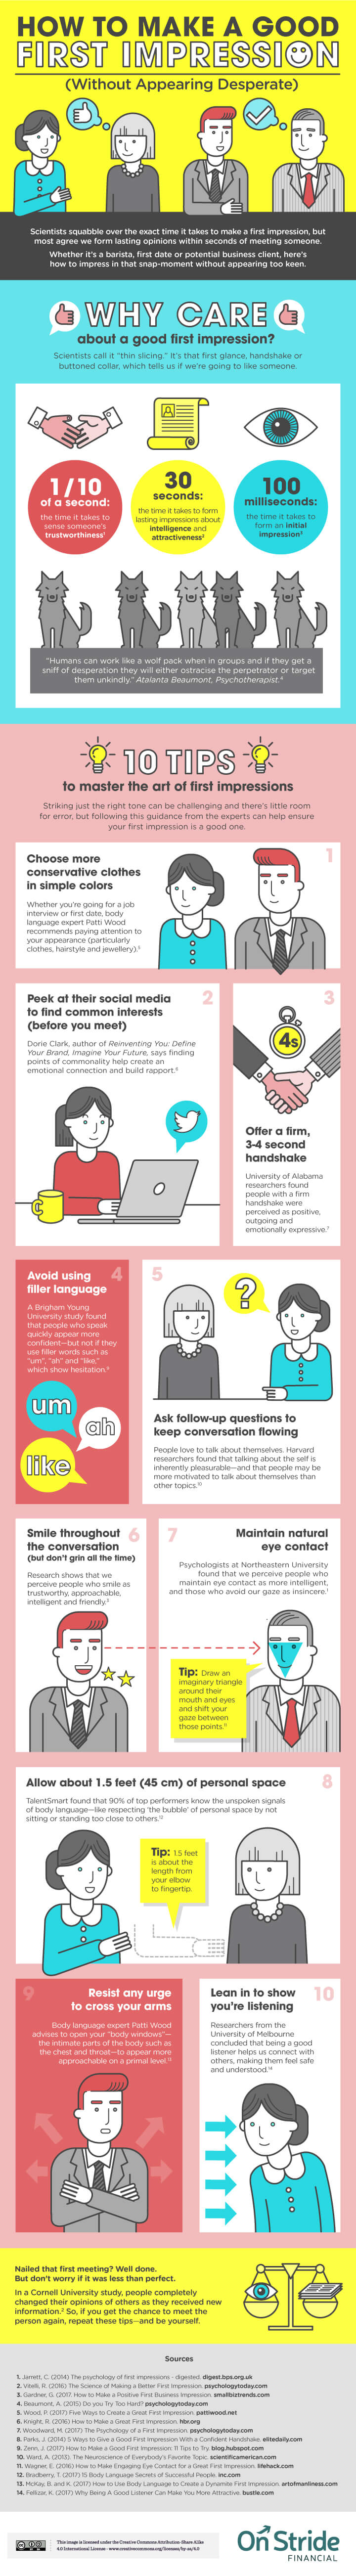 How First Impression = Lasting Impression = Positive and Strong Relationships - Infographic